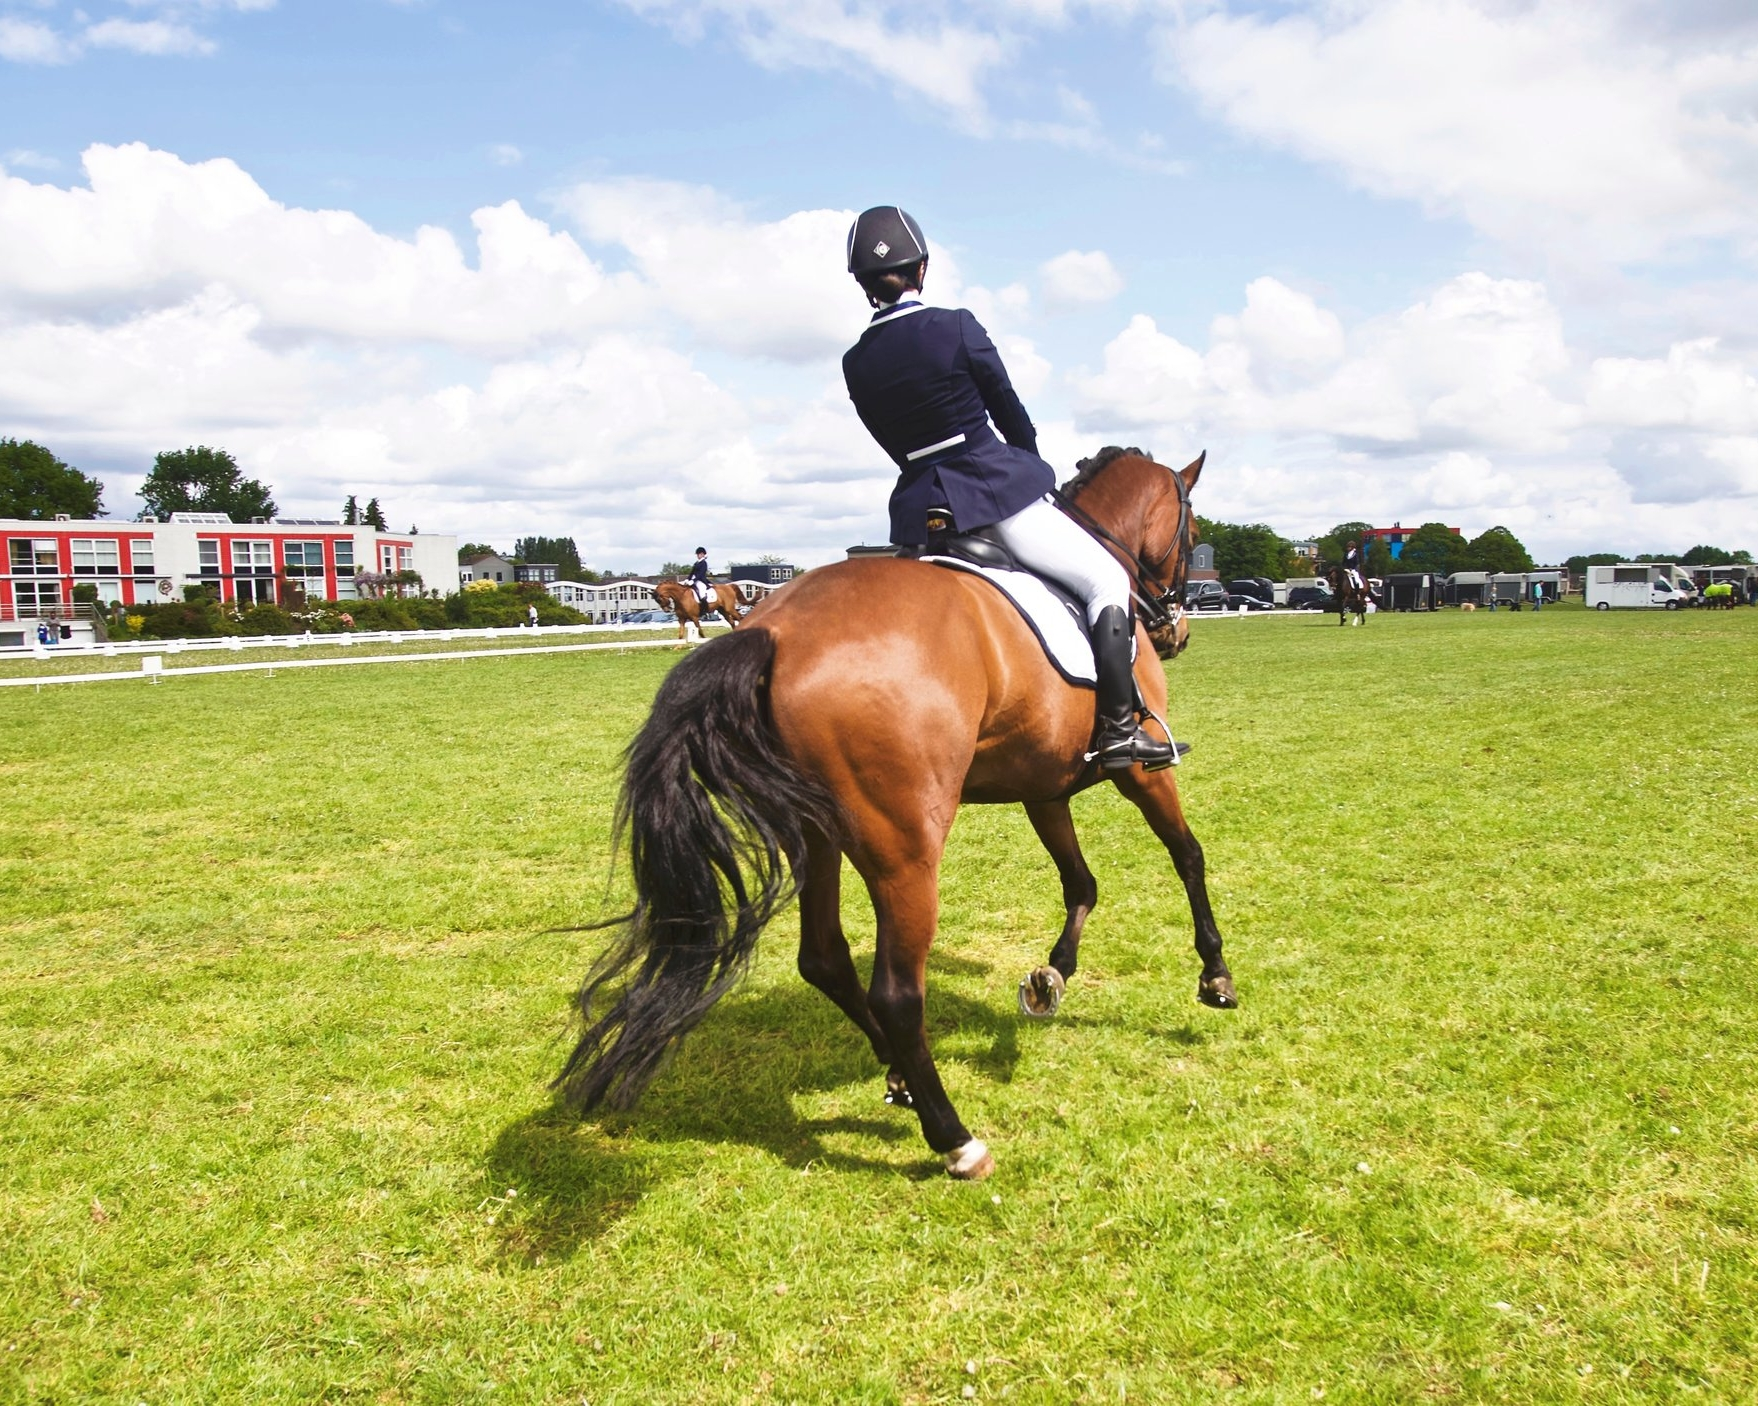 Equestrian - The school enters a team each year in the Interschool Hunter Trials and this team competes regularly throughout the year in Interschool Showjumping Events.